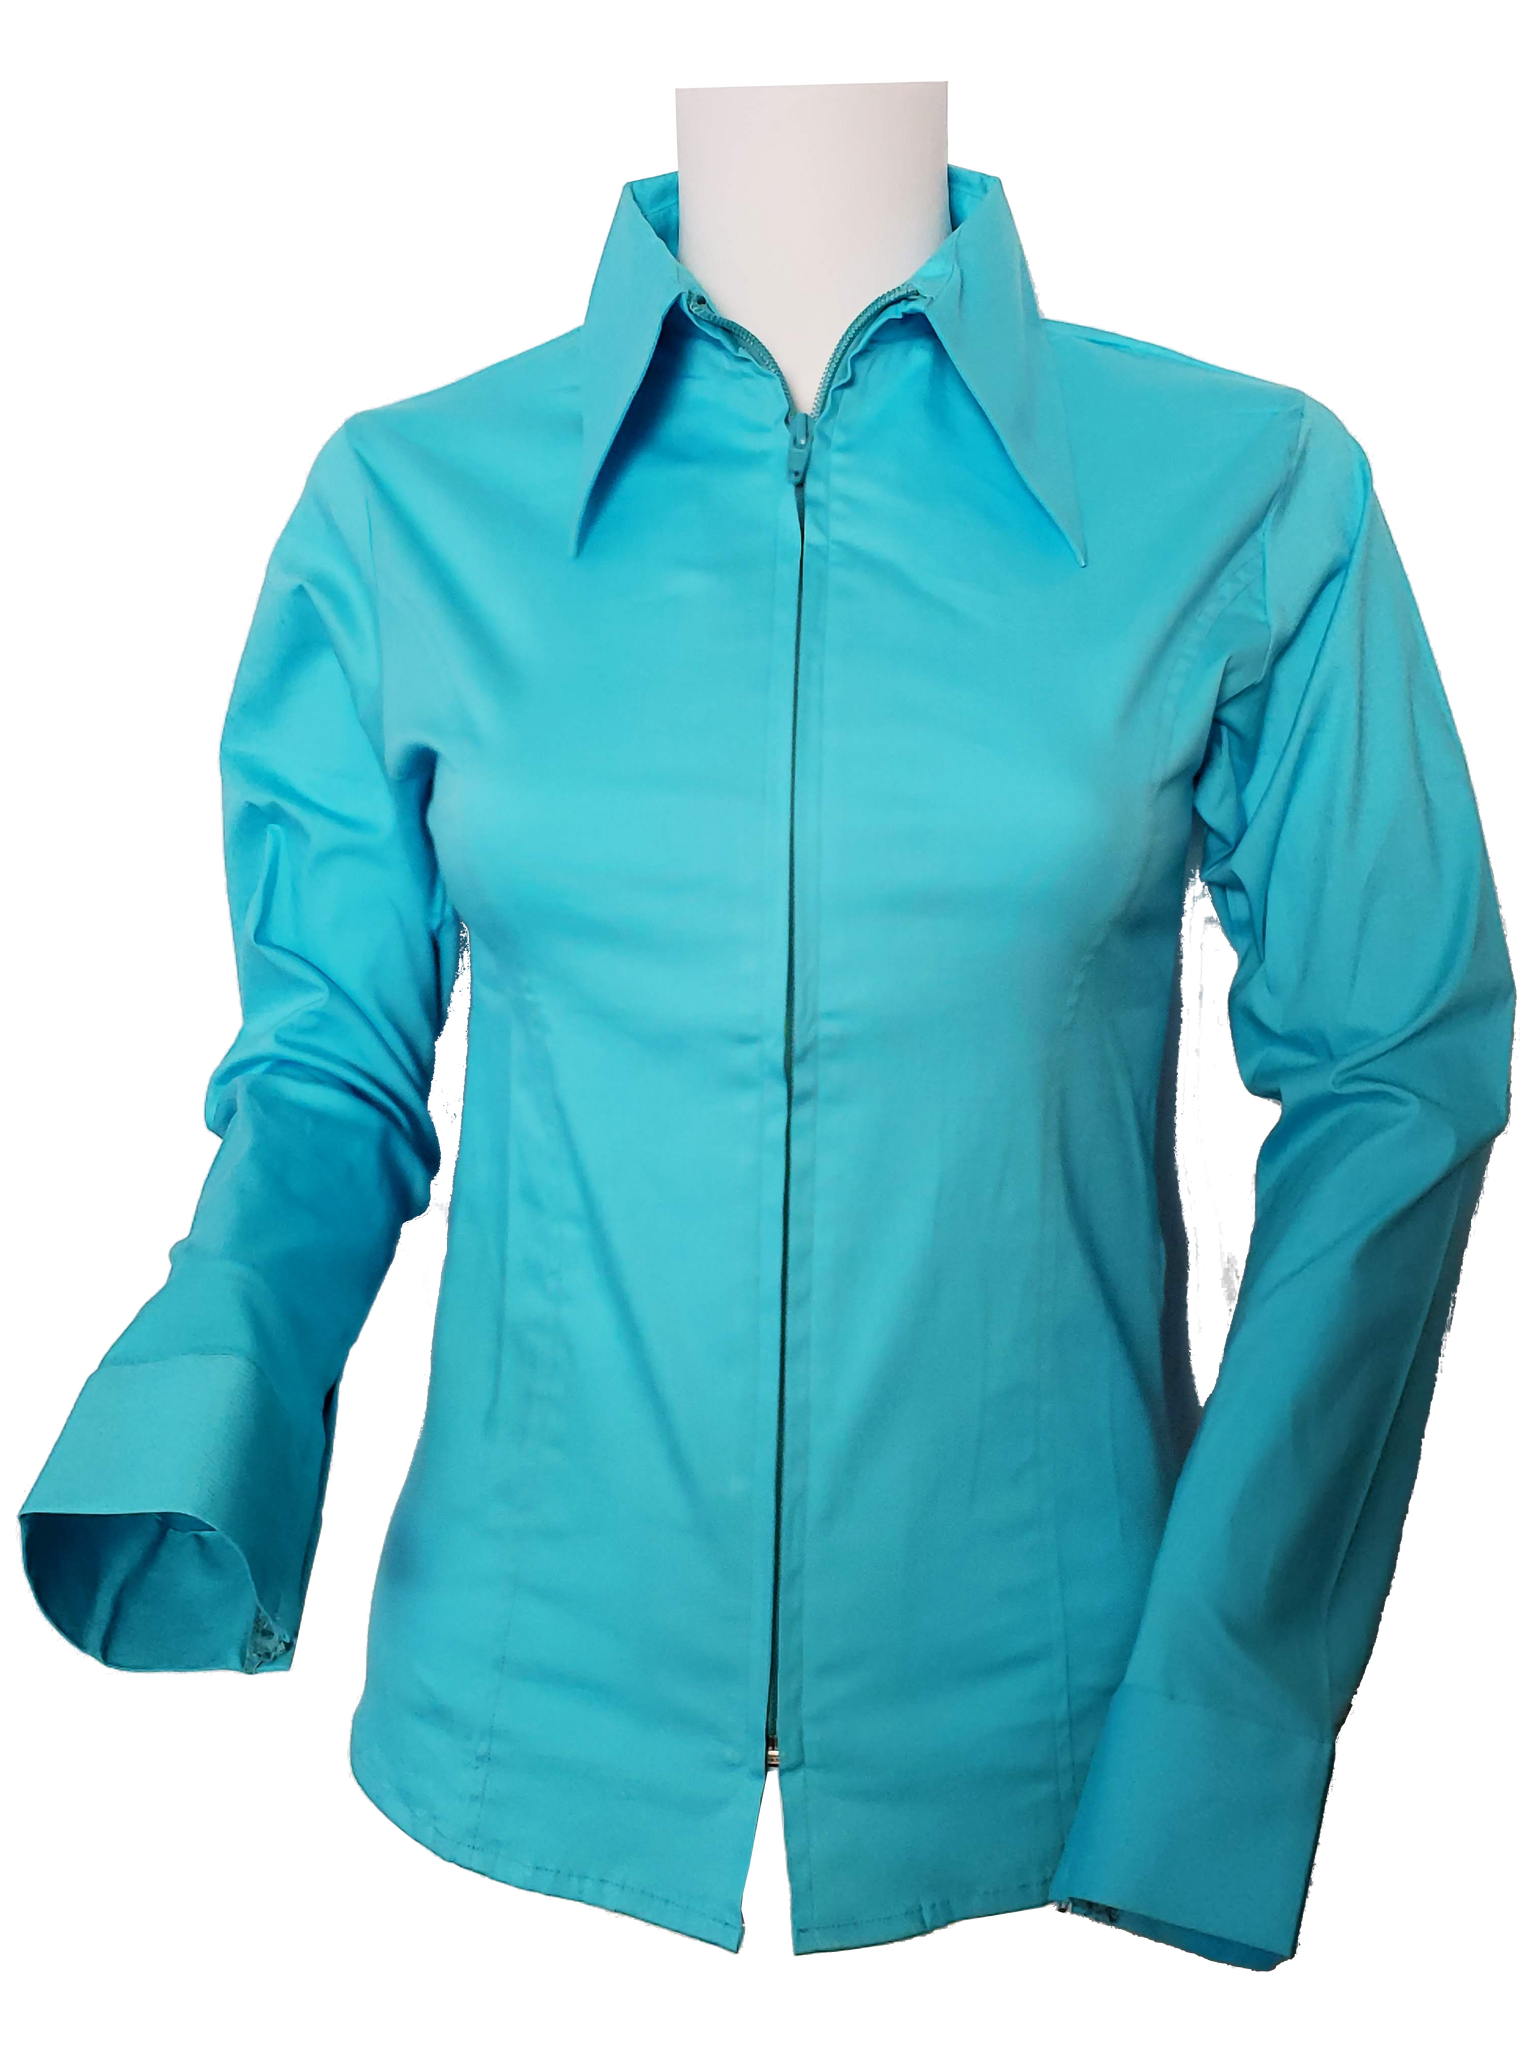 Ladies Solid Color Zip Up Show Shirt (Turquoise)